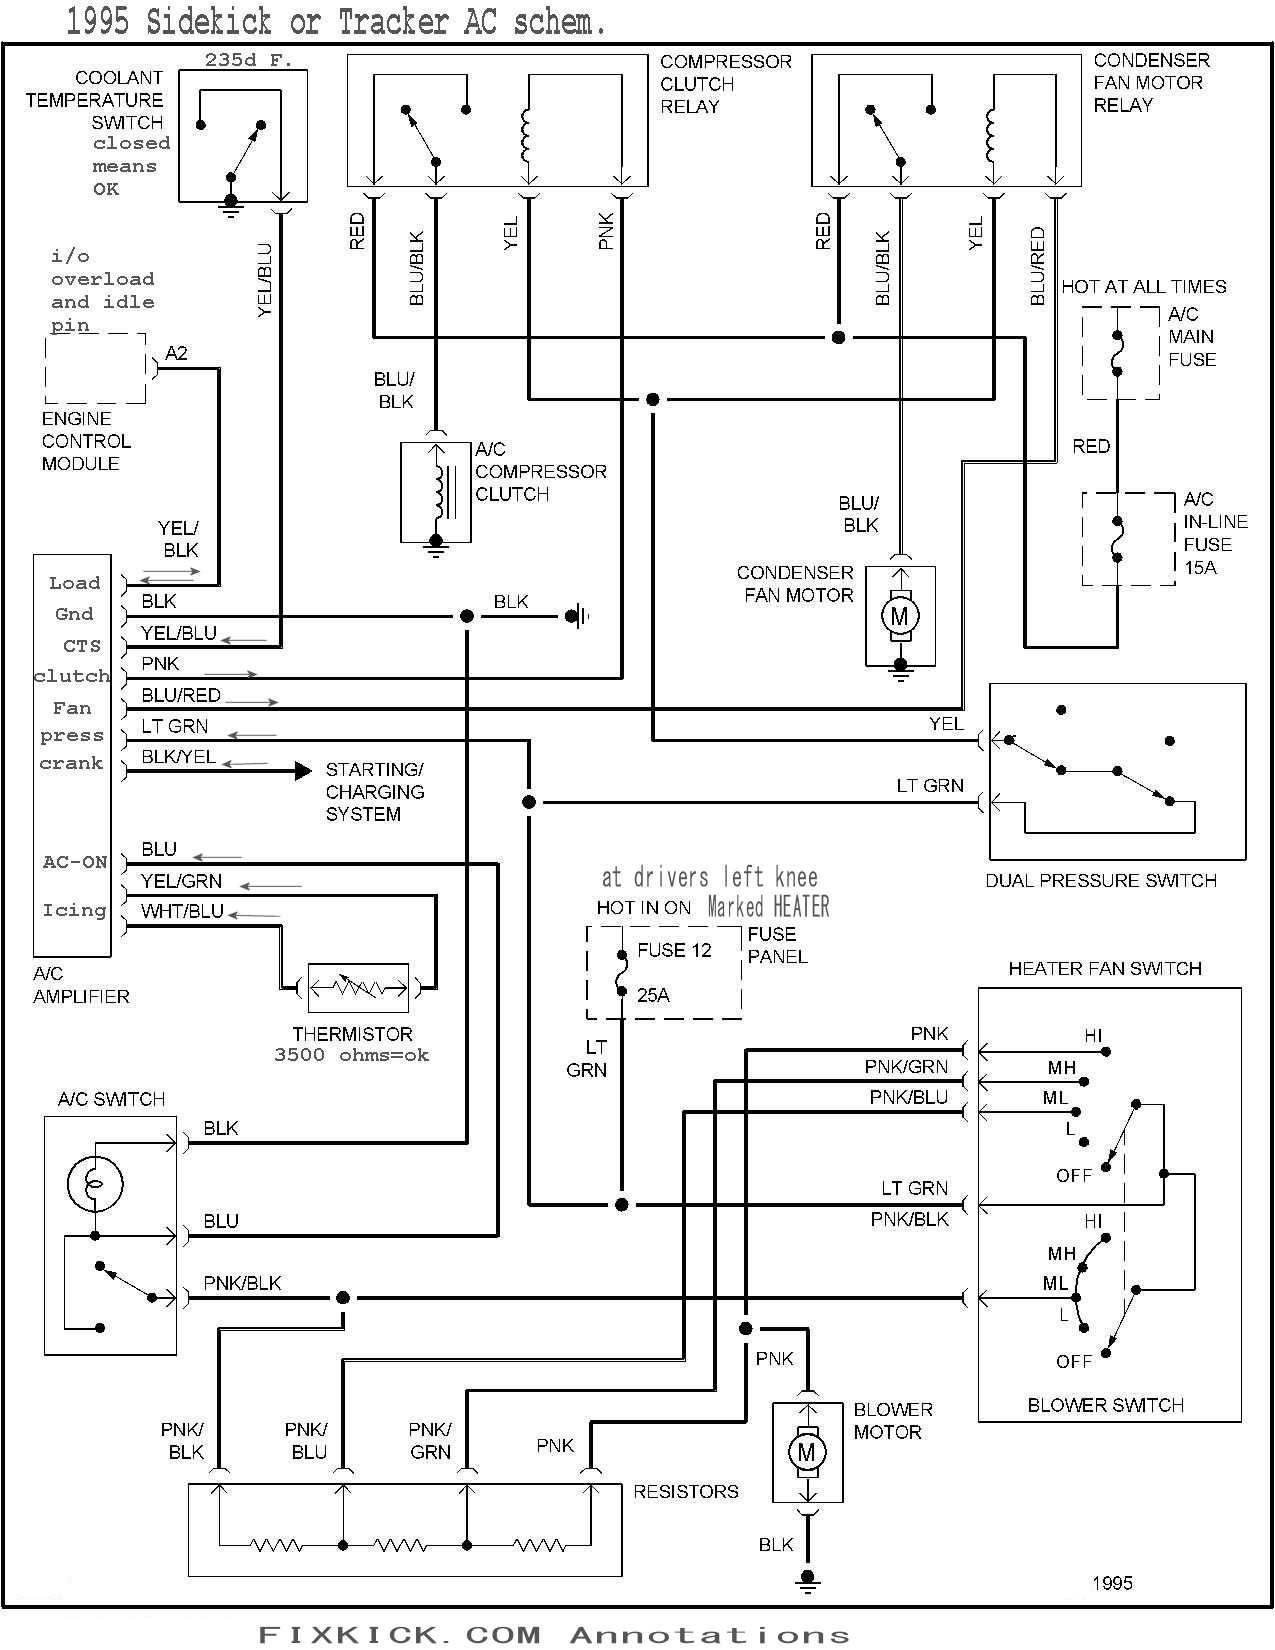 95 AC elect draw 1996 geo tracker wiring diagram 1992 geo tracker wiring diagram 1986 suzuki samurai wiring diagram at crackthecode.co